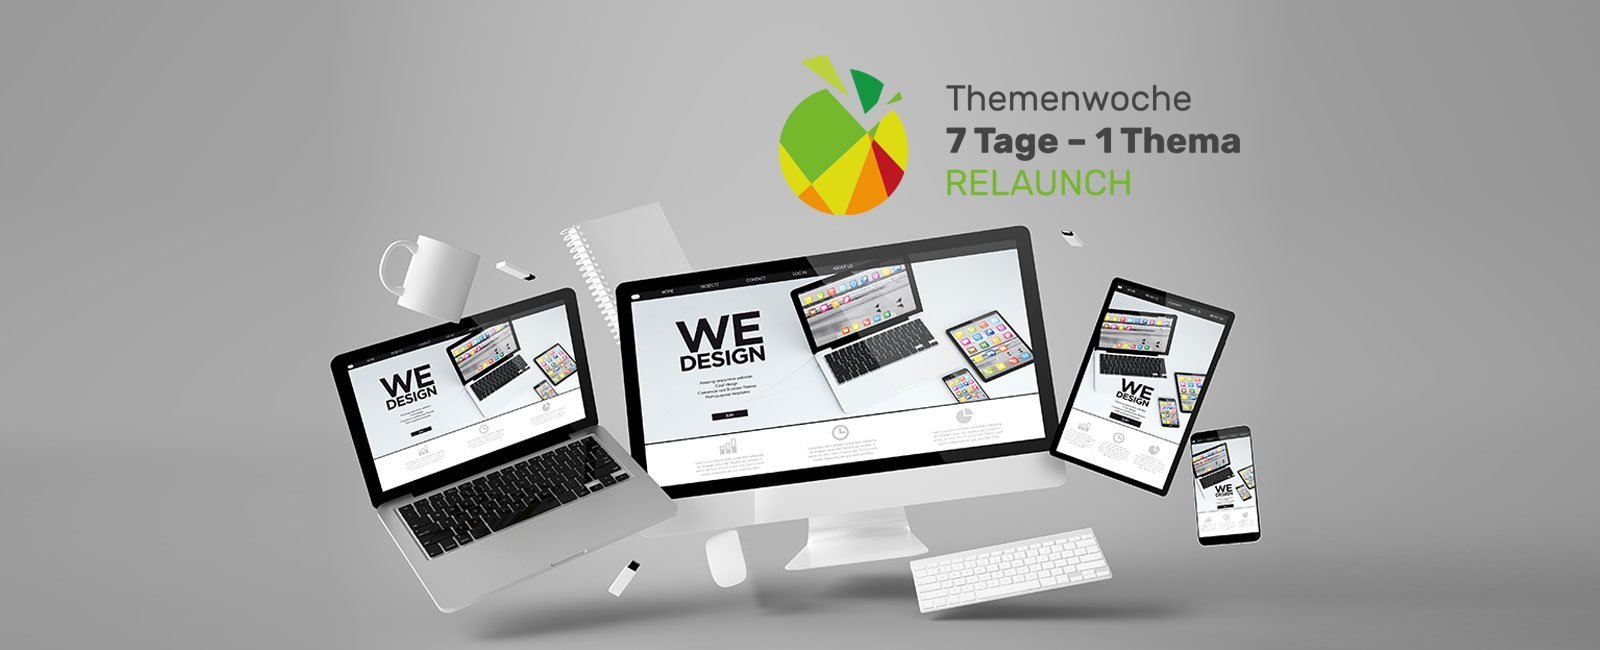 blog econsor relaunch themenwoche webtrends